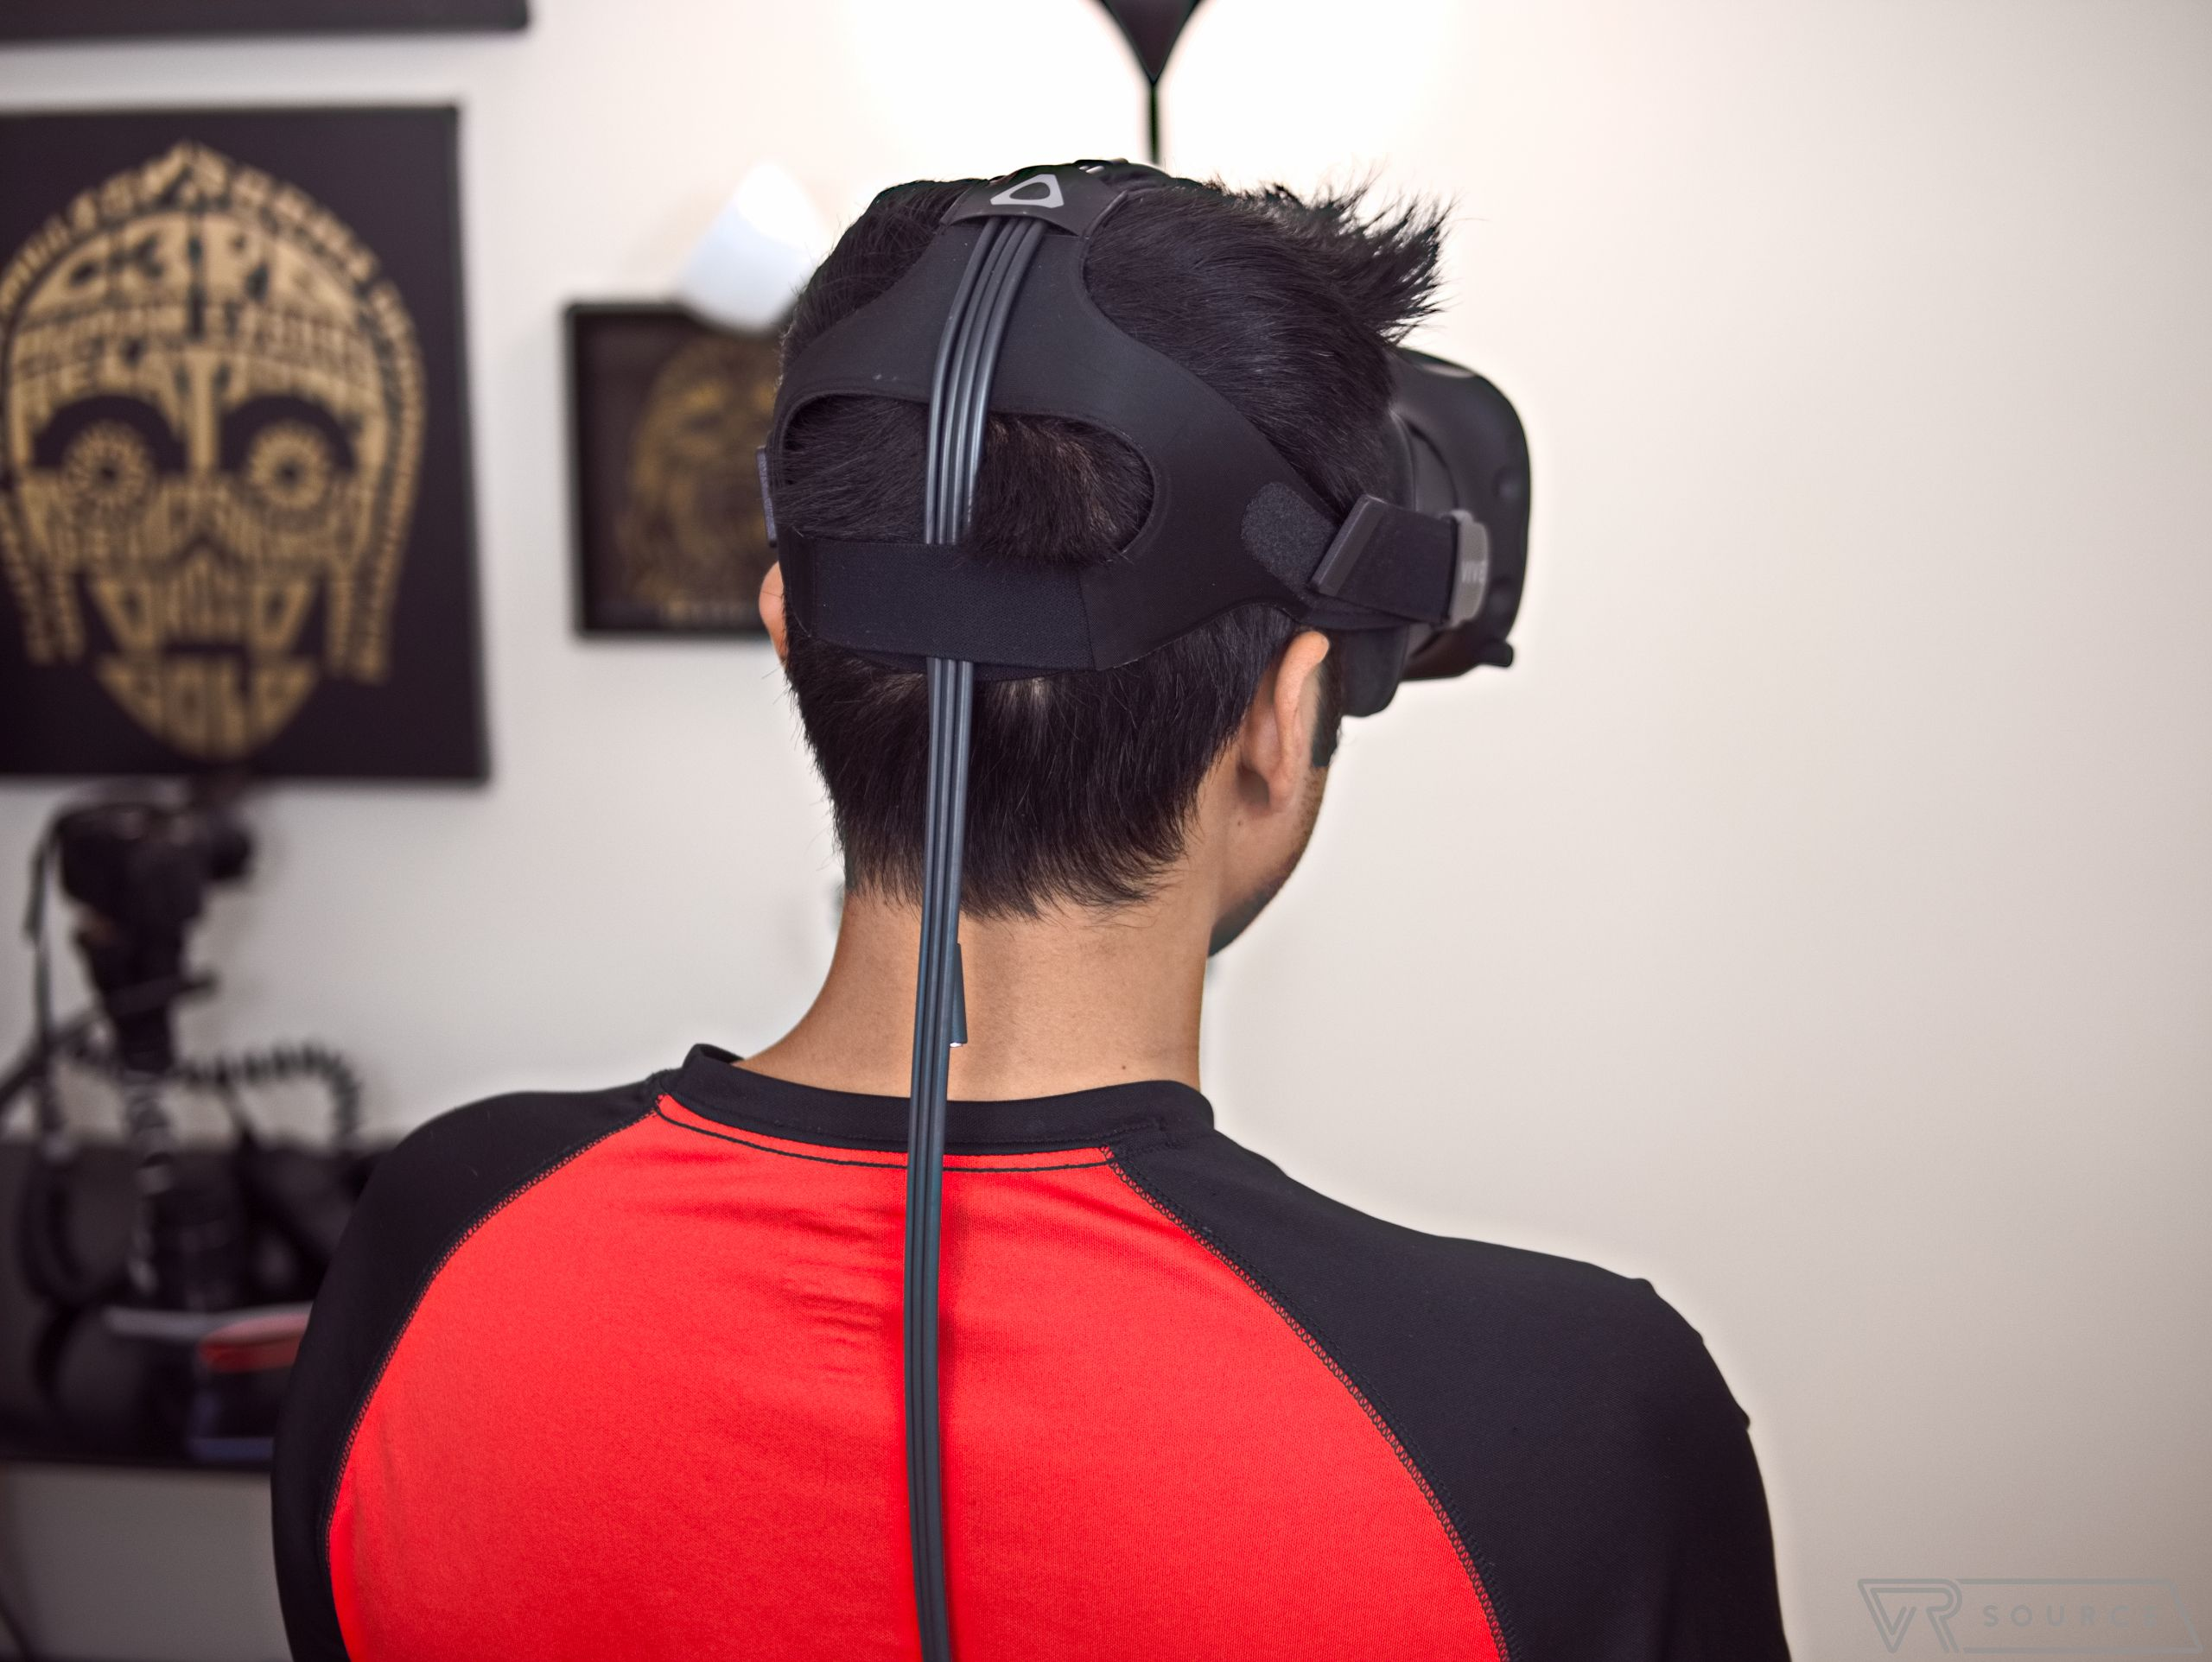 5 annoying design quirks of current VR headsets 1